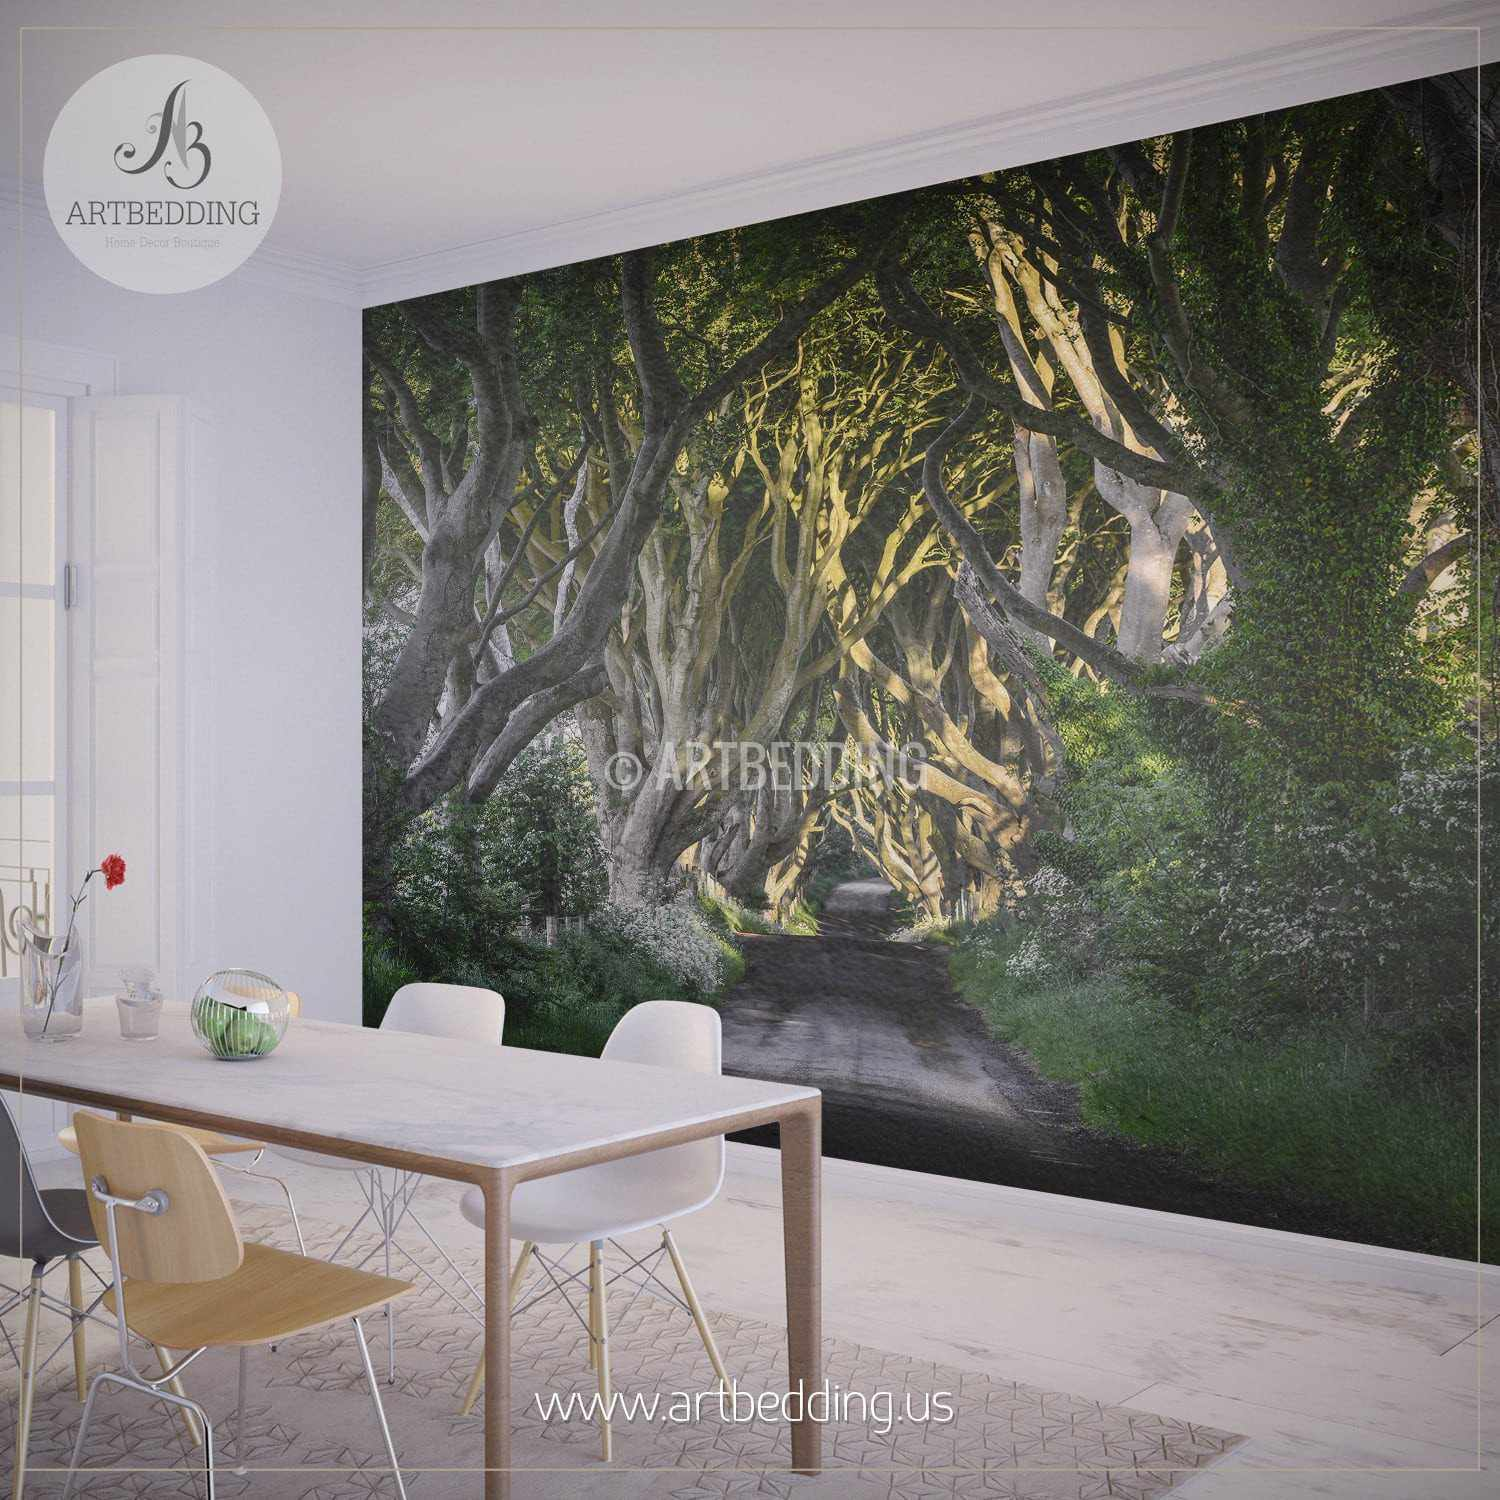 ... Route Through Forest Wall Mural, Self Adhesive Peel U0026 Stick Photo Mural,  Nature Photo ... Part 41